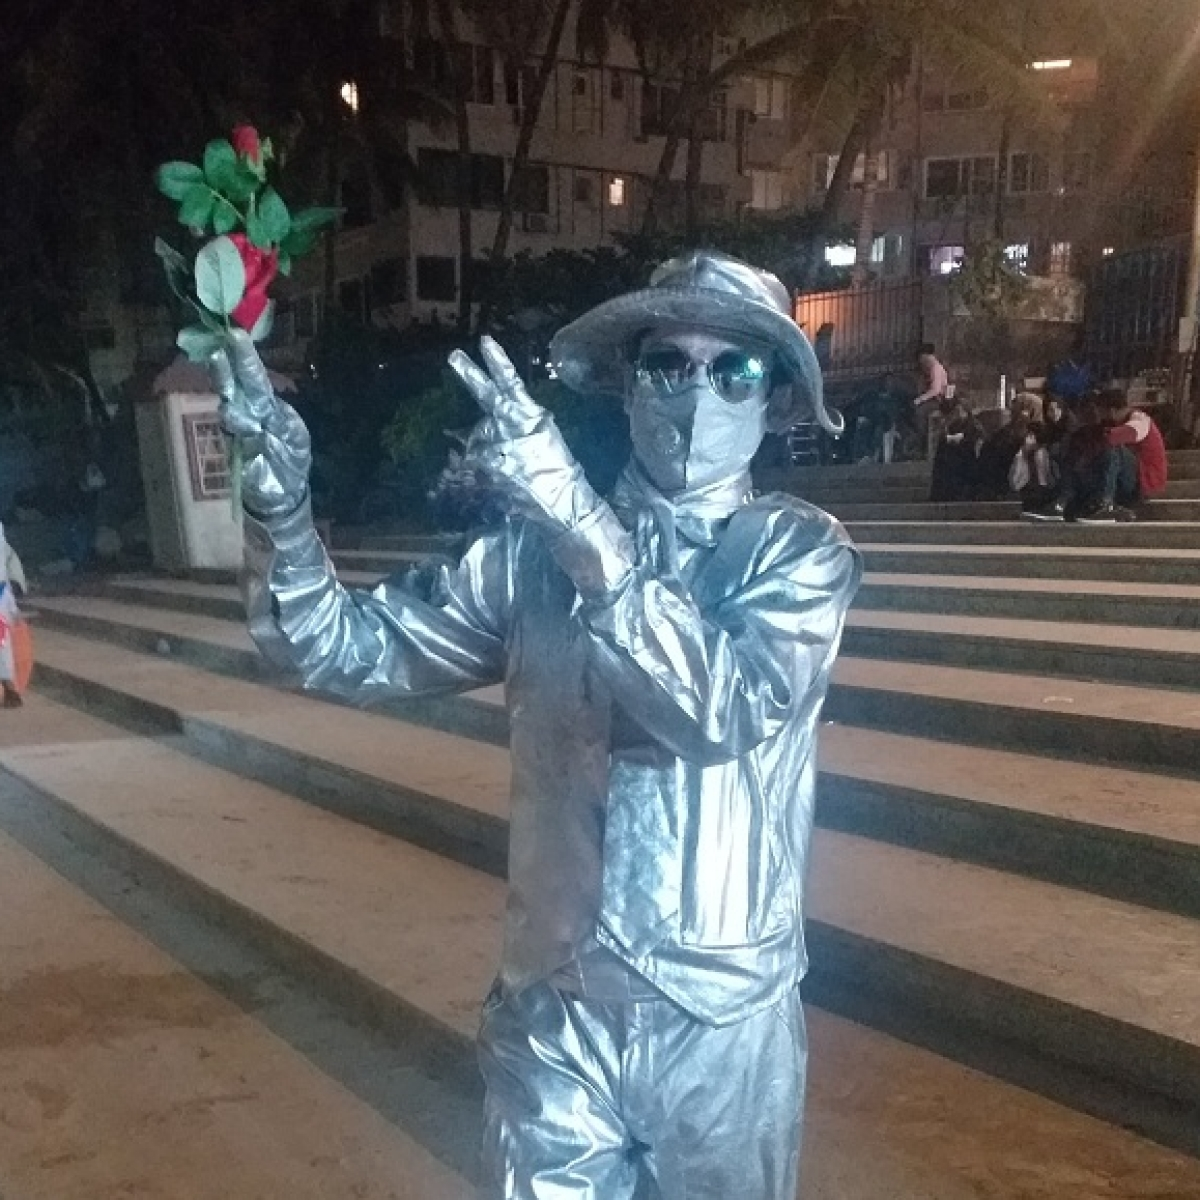 Busking in glory: Meet Mumbai's 'living statues'